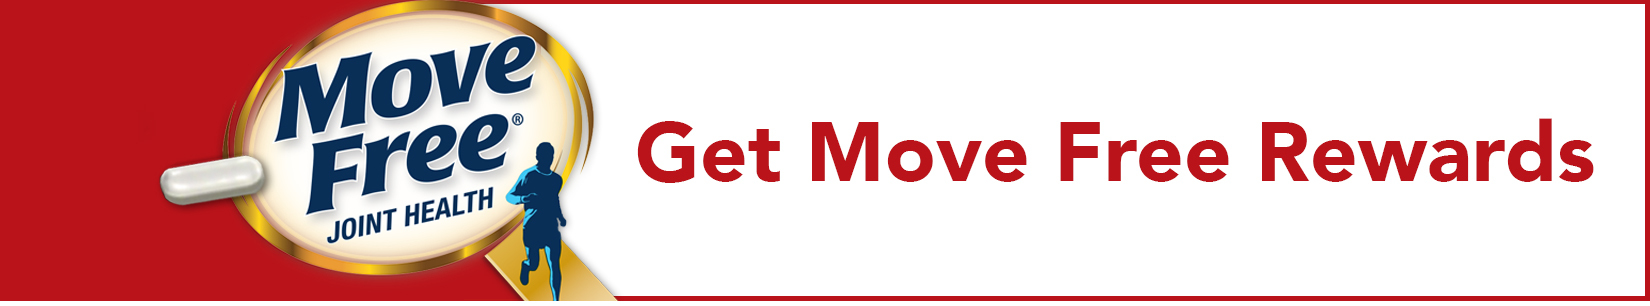 Get Move Free Rewards